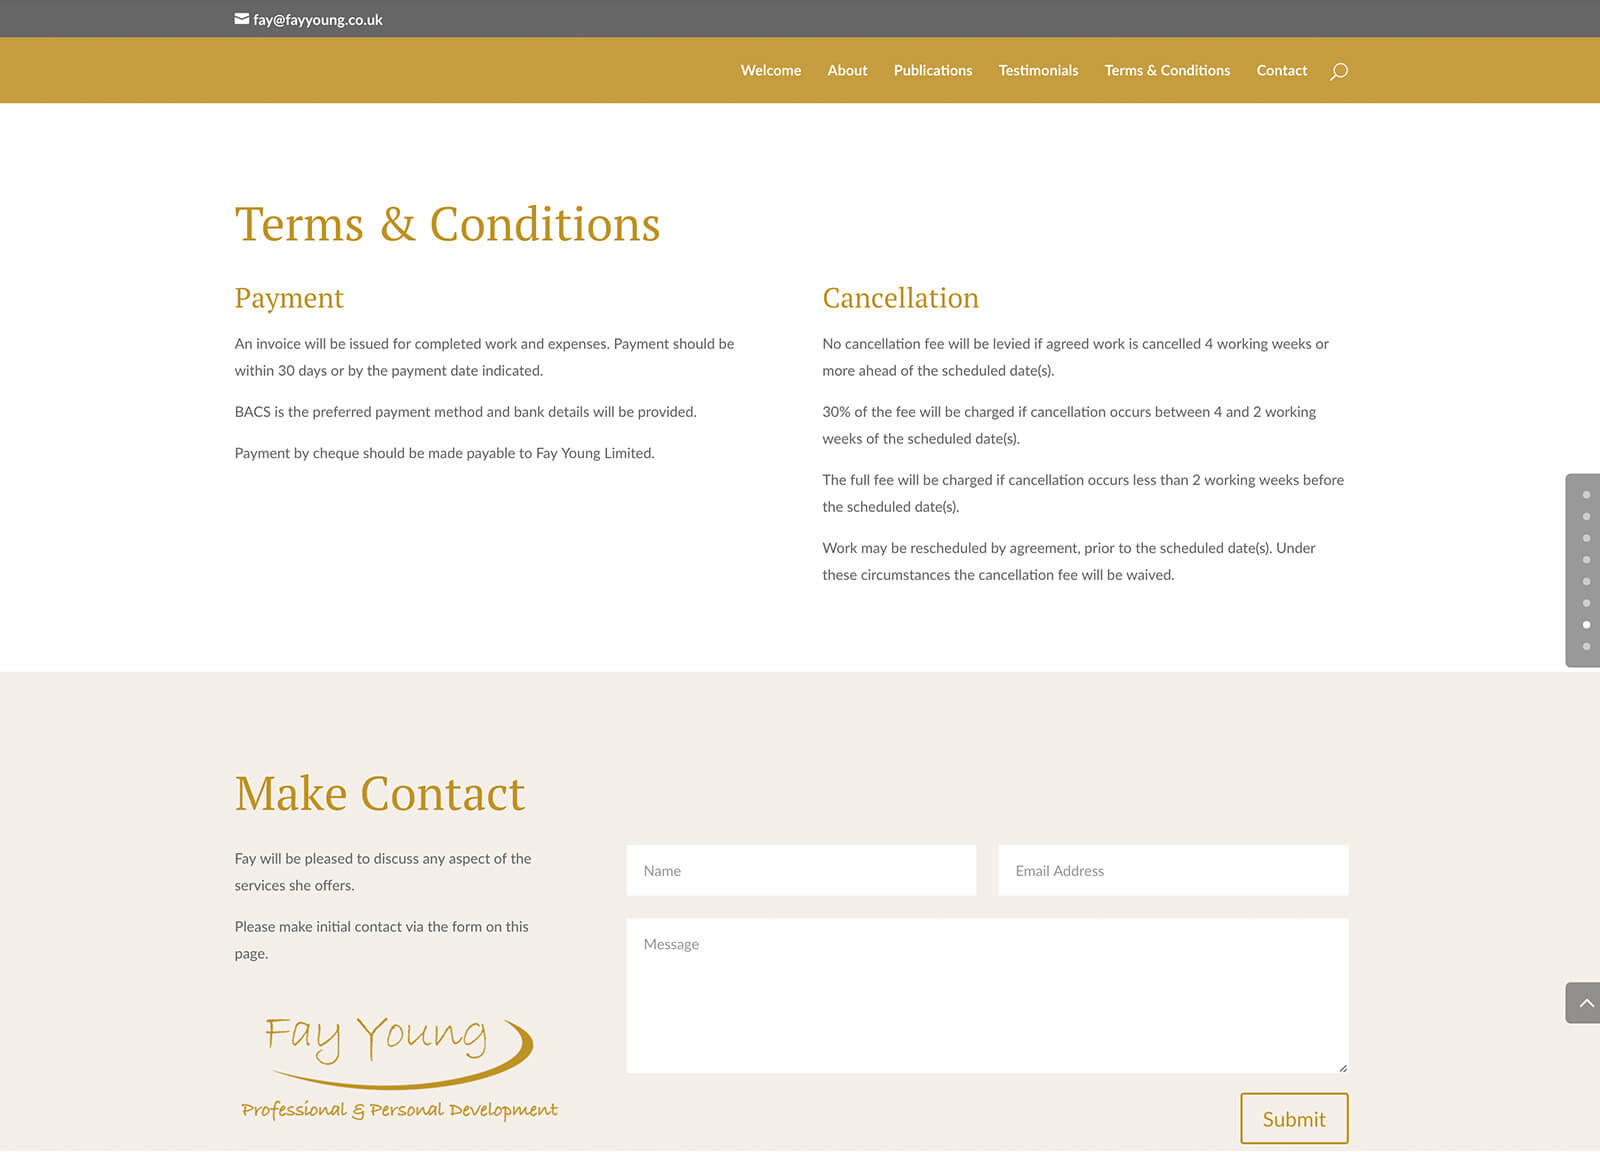 Quick website design for local self-employed consultant website: Contact section